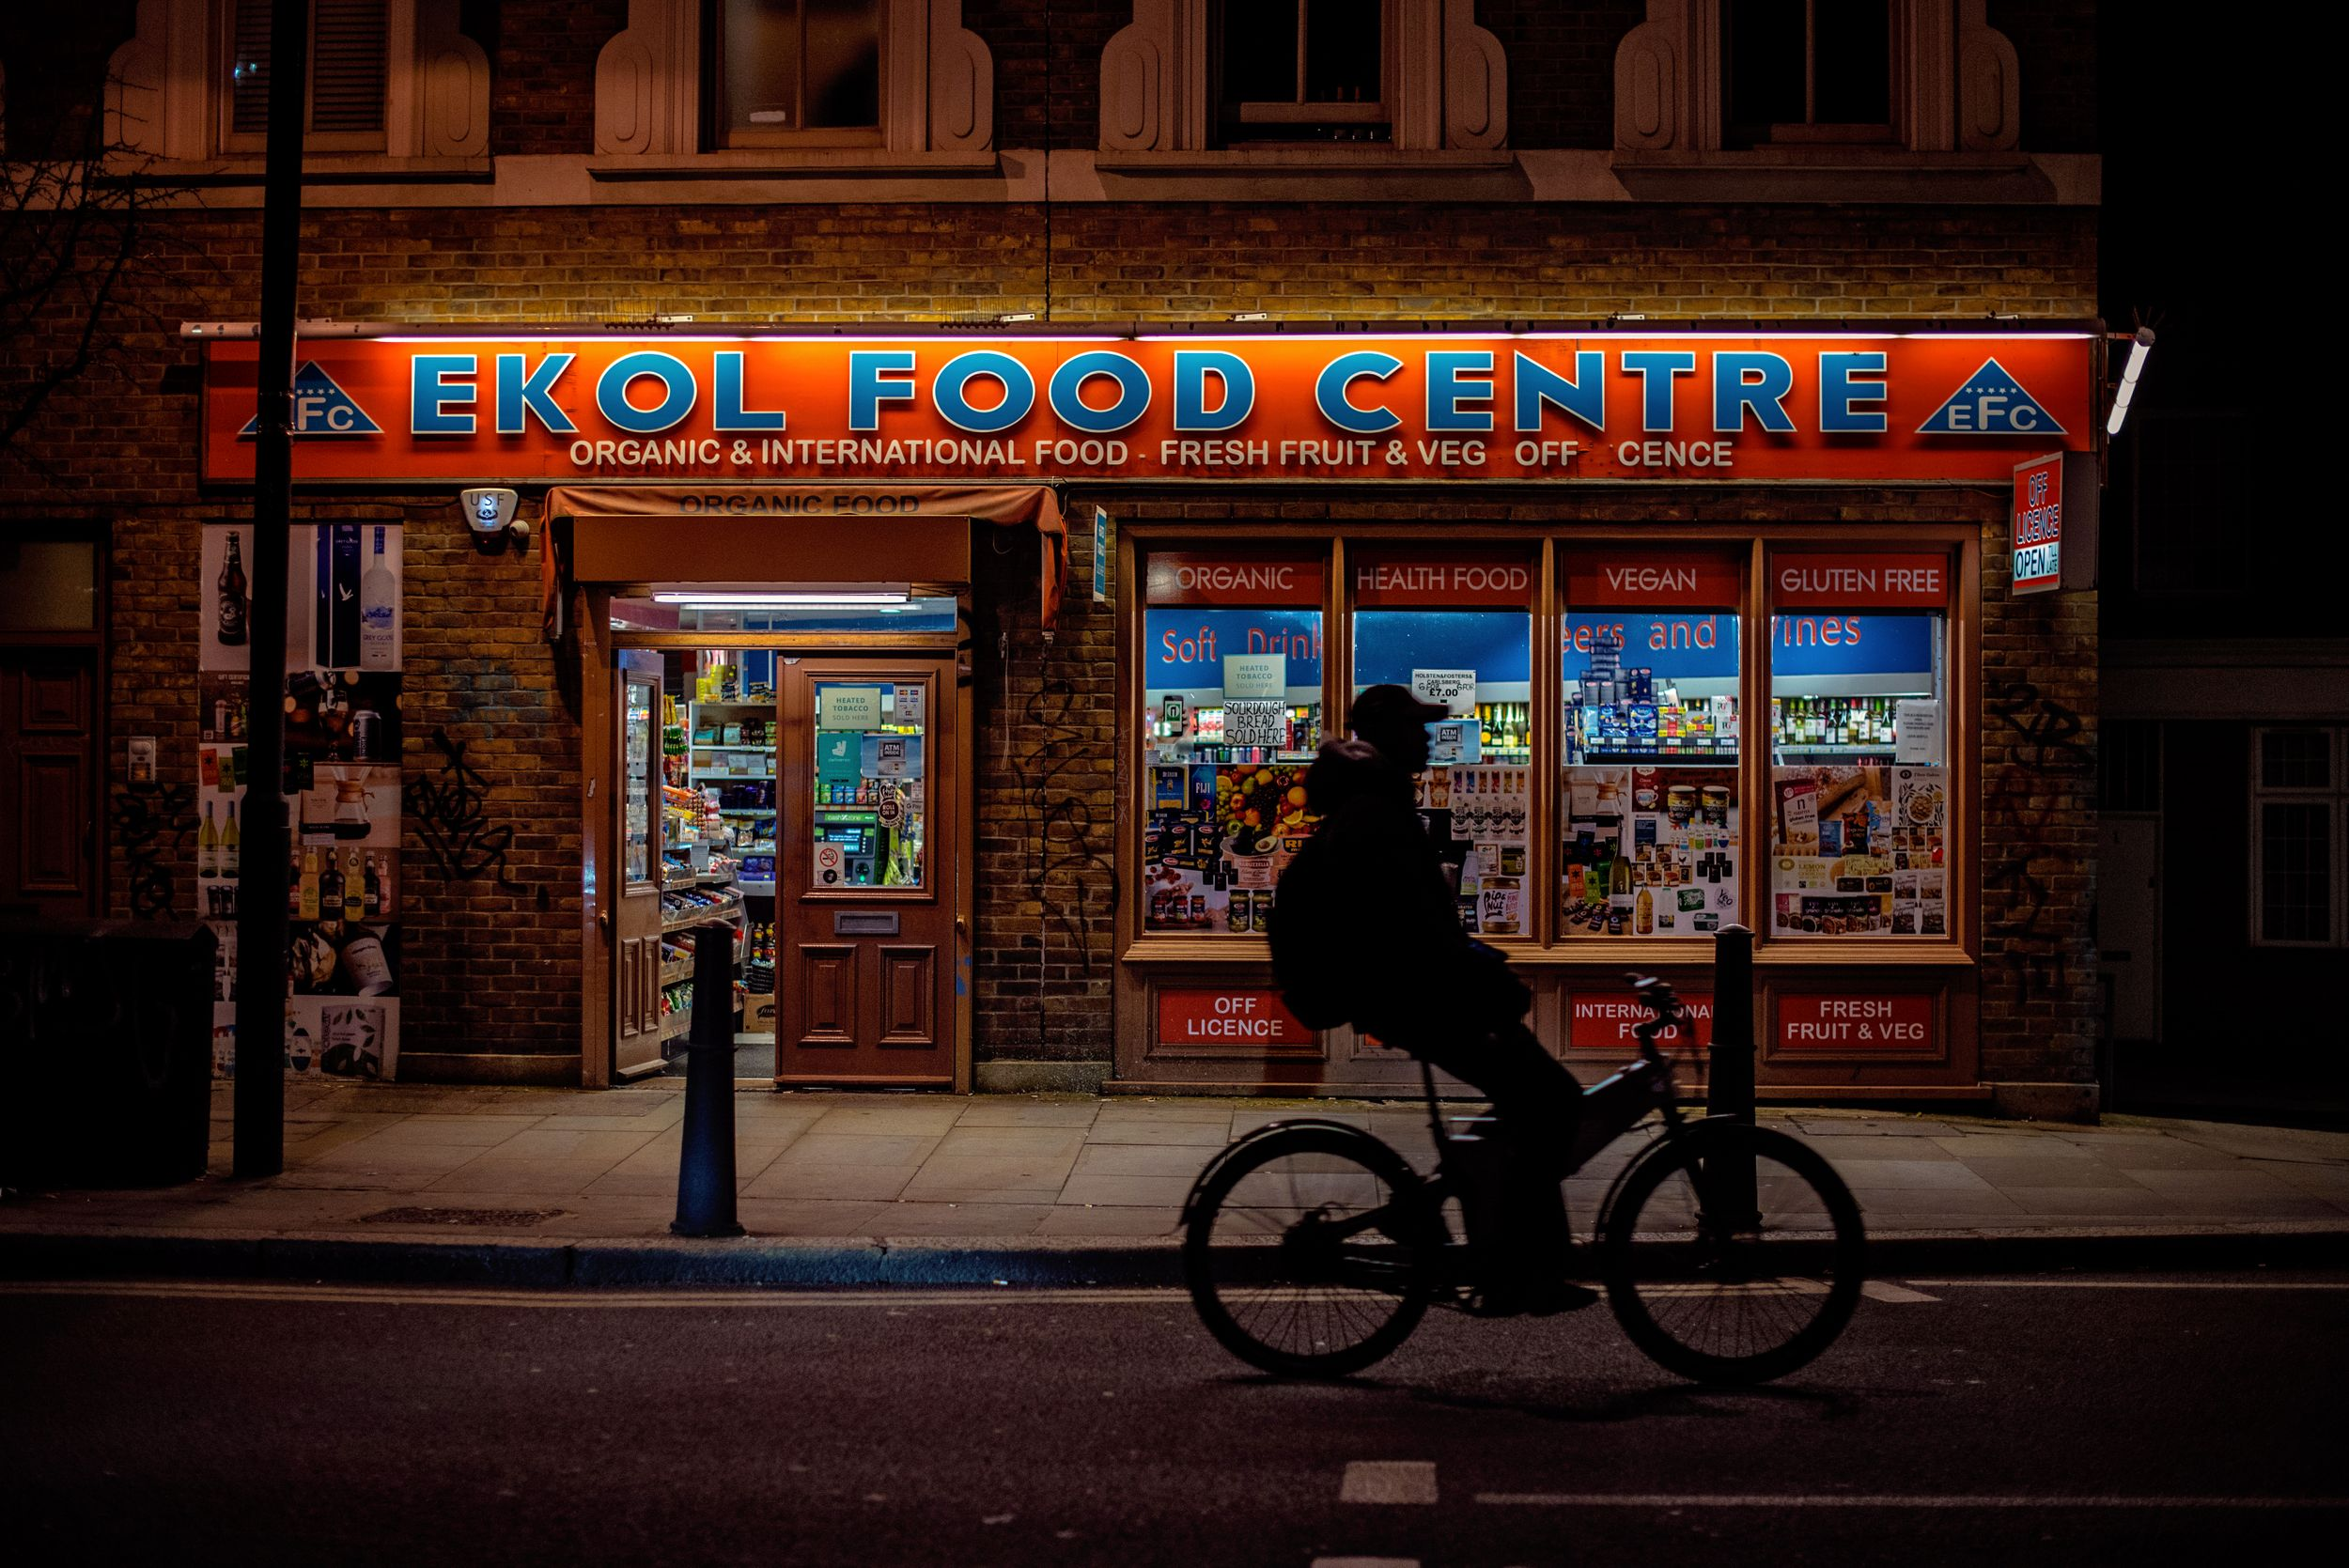 Silhouette of a man riding his bike past lit food centre in London's Shoreditch neighborhood